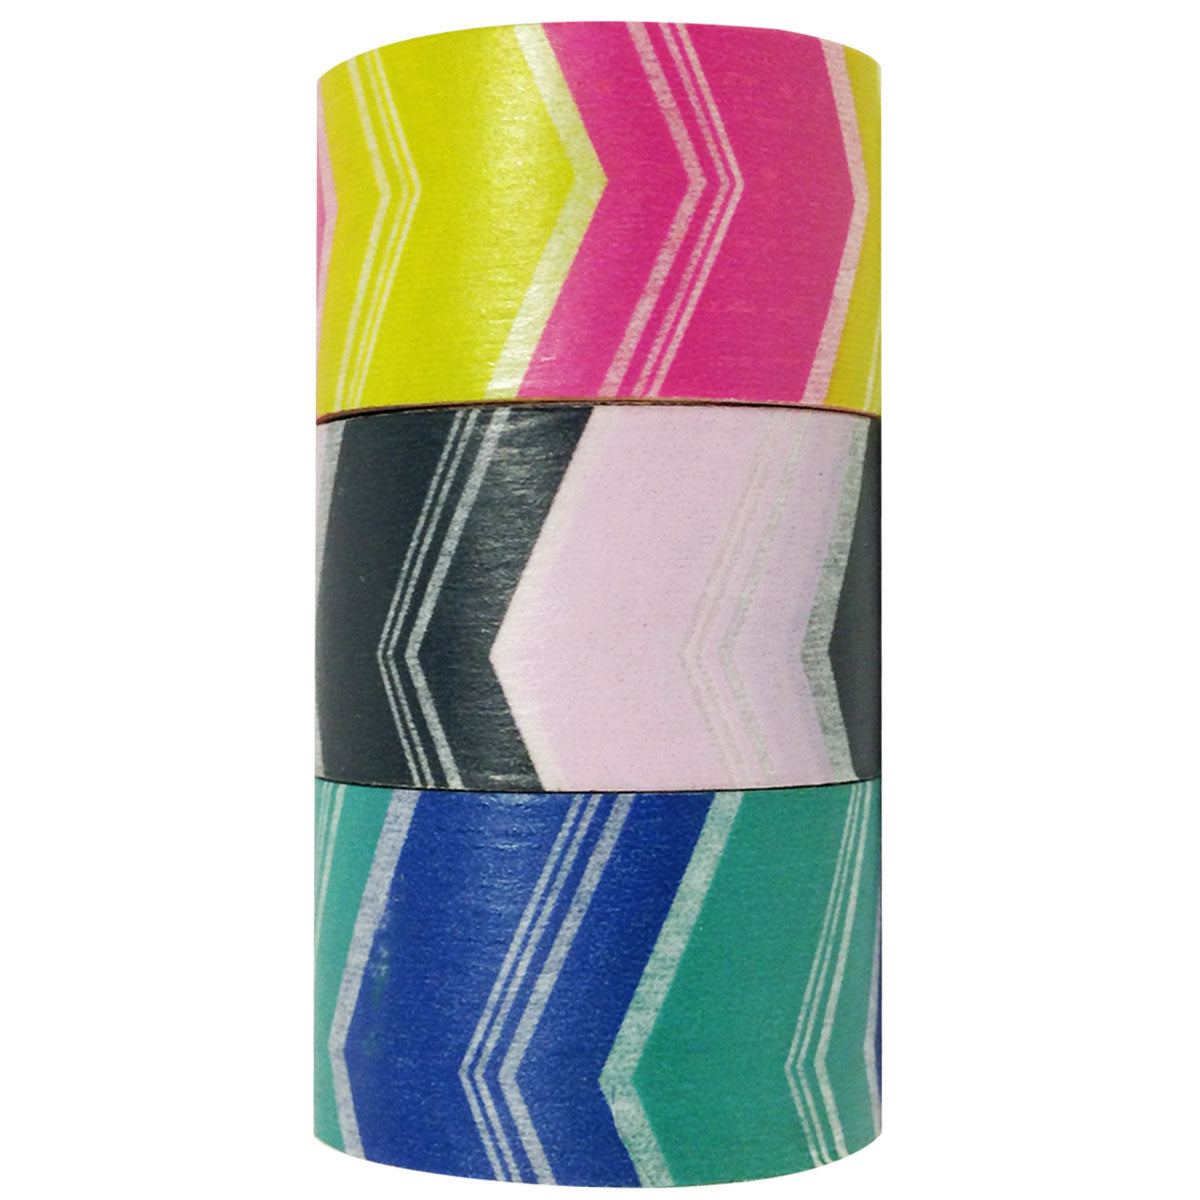 Wrapables Retro Arrows Japanese Washi Masking Tape (set of 3), 20M L x 4.5mm W